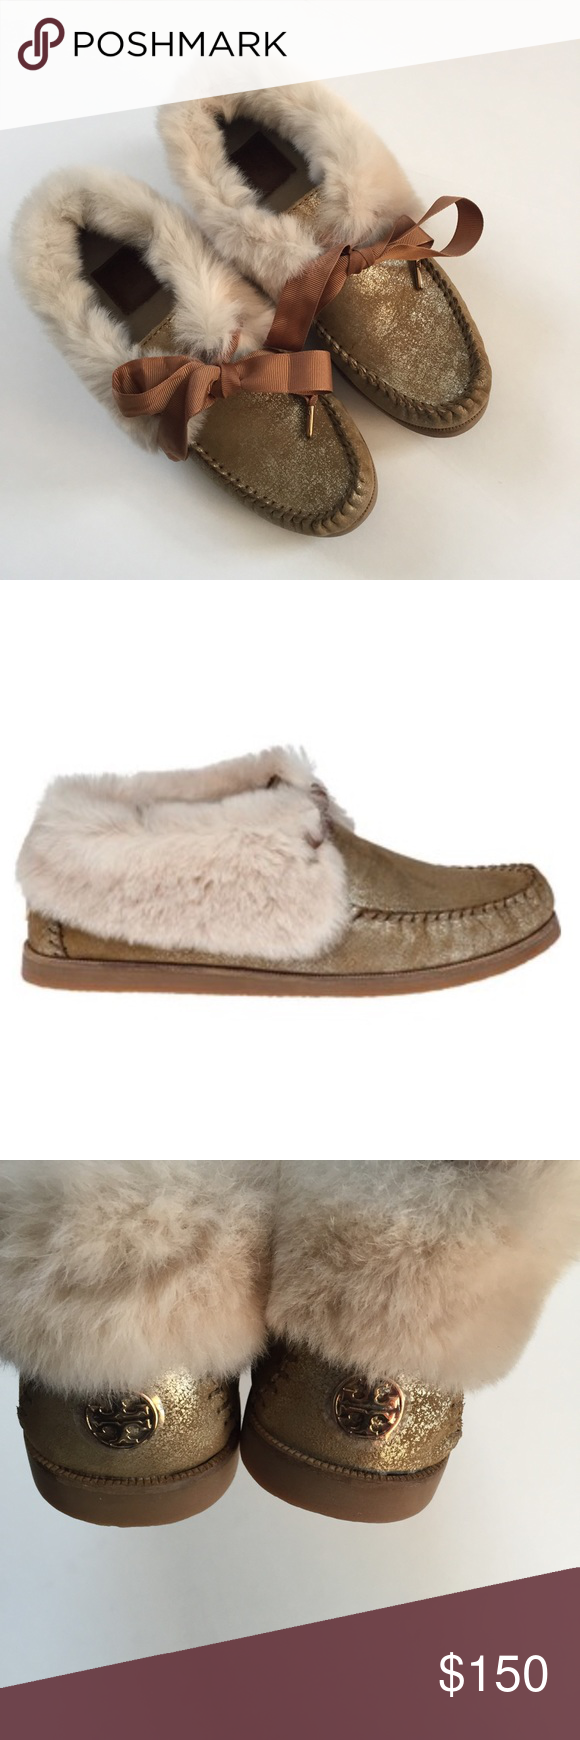 24a8388a2de Tory Burch Gold Natural Aberdeen Slipper New in box. Color is natural  brushed with metallic gold. Lined with rabbit fur at the top. Rubber soles.